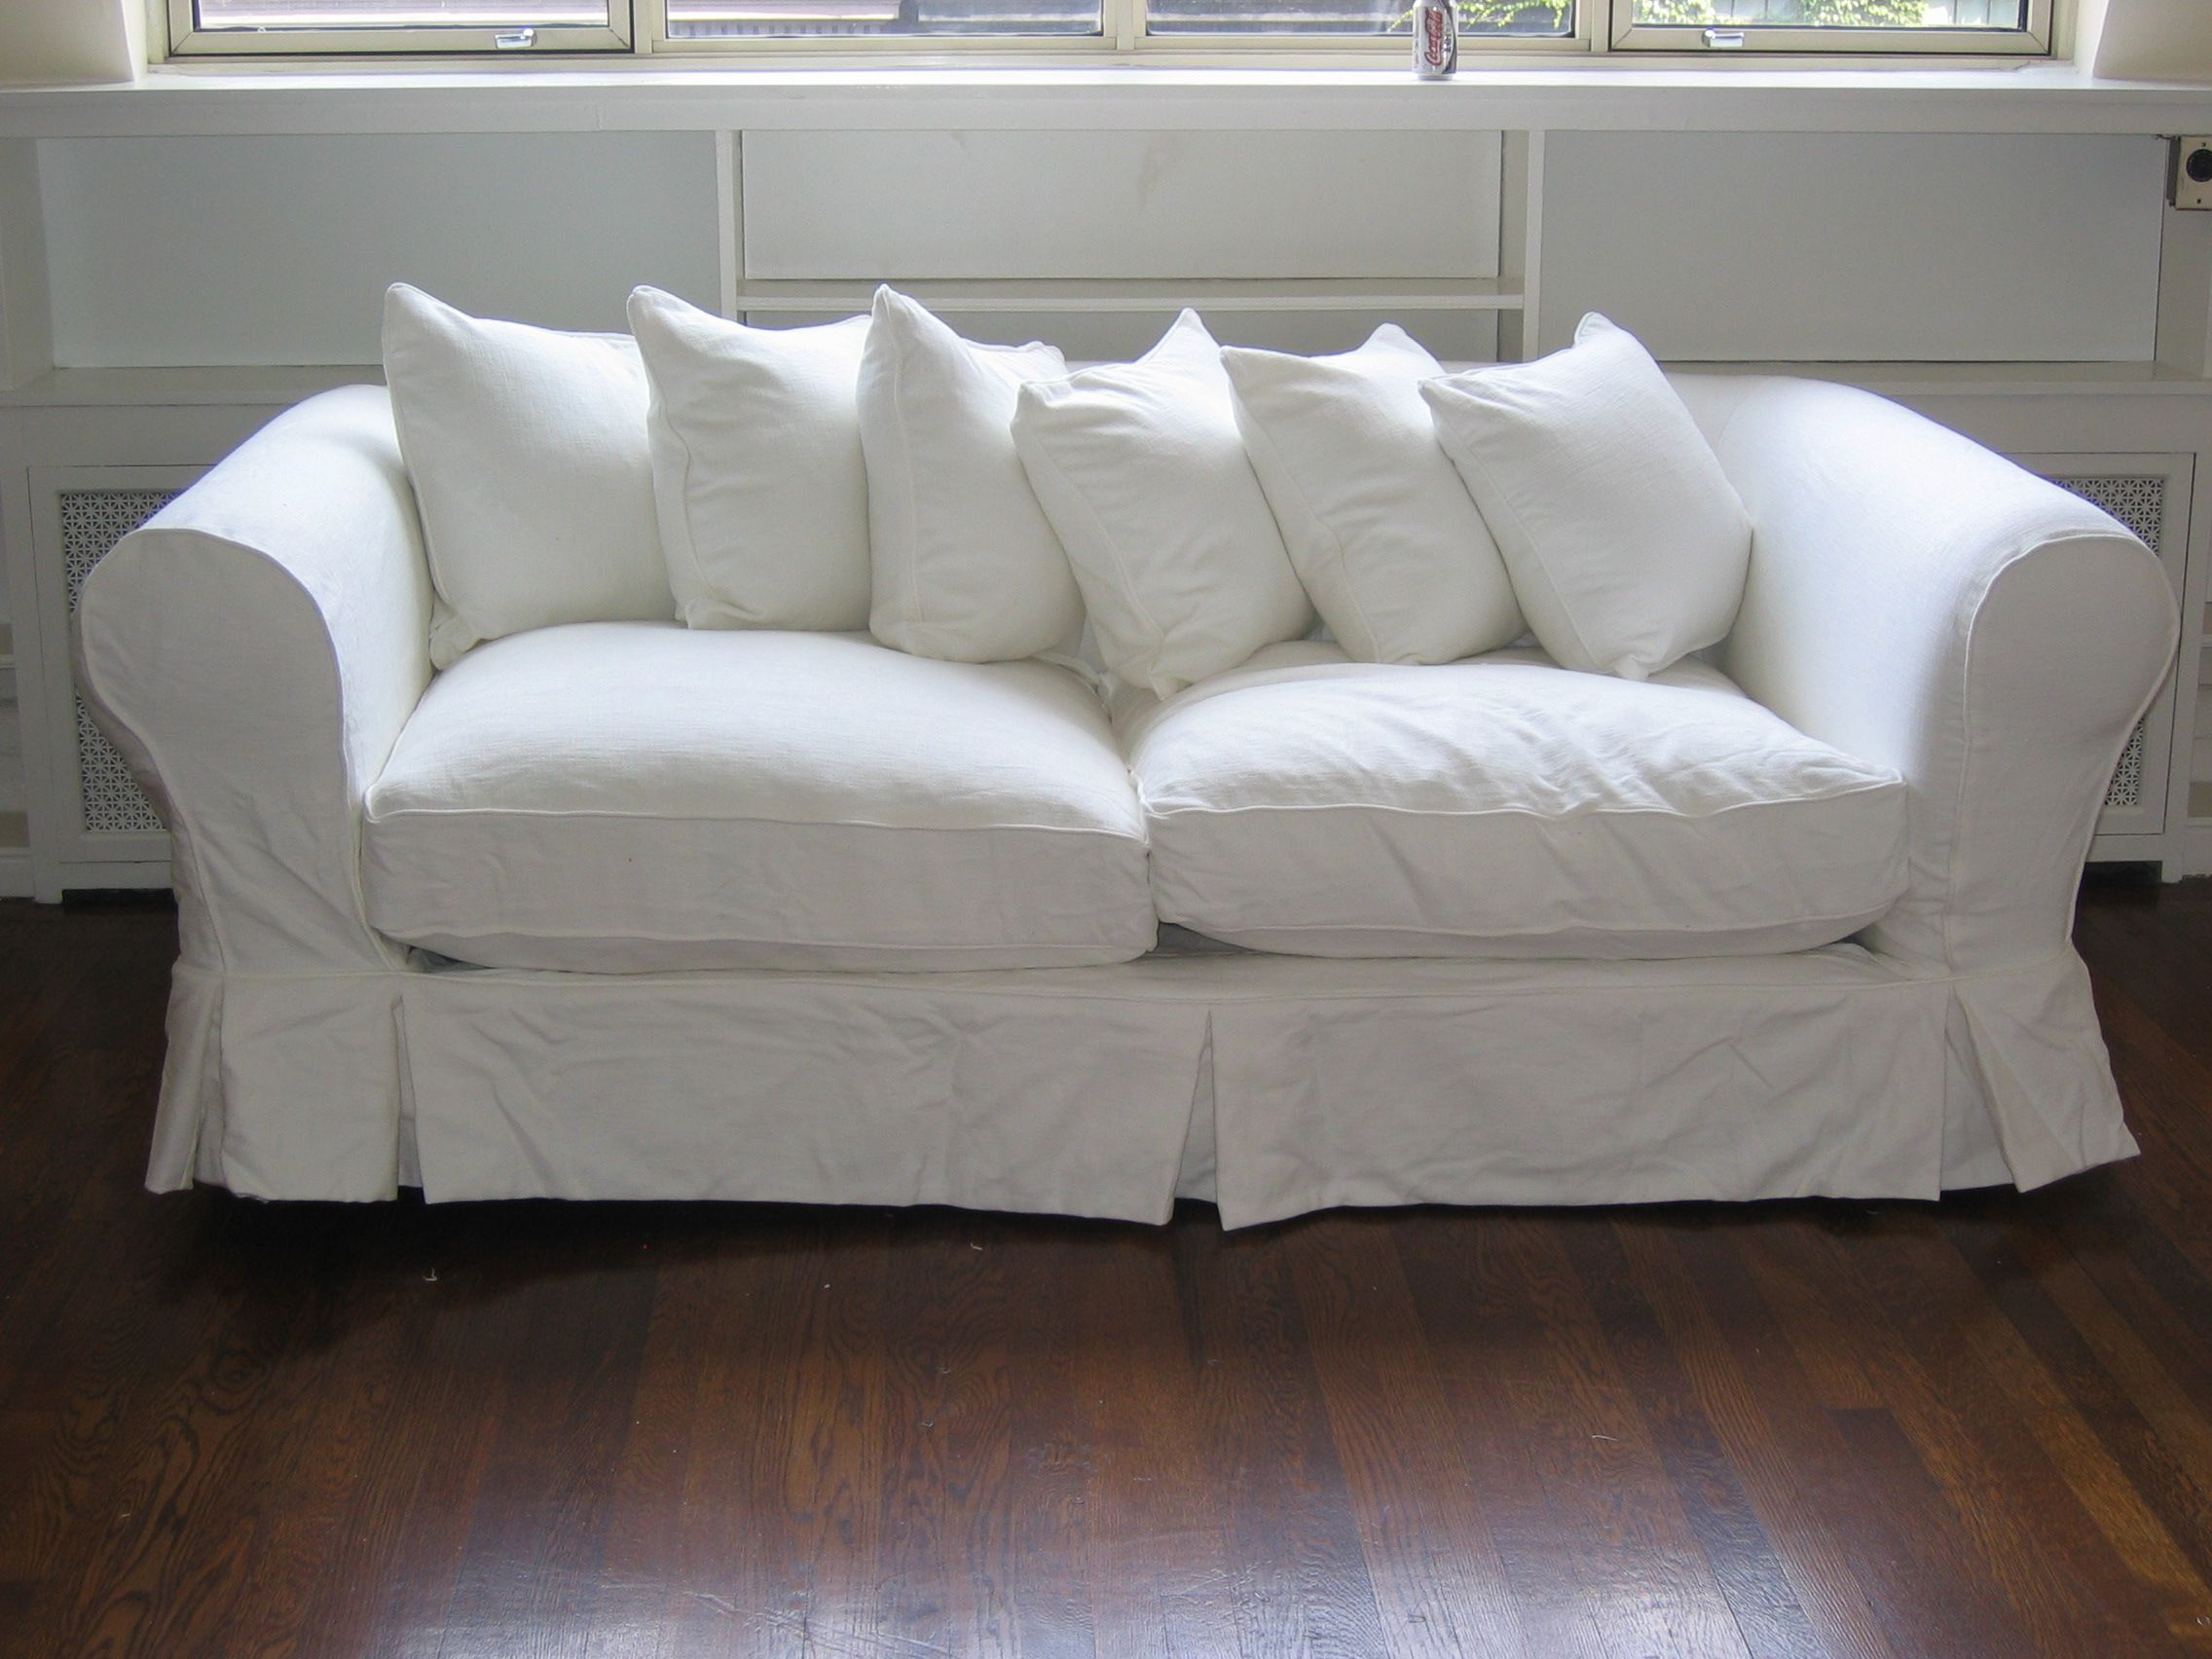 This Cloud Of A Couch Would Be A Divine Fit For This Room